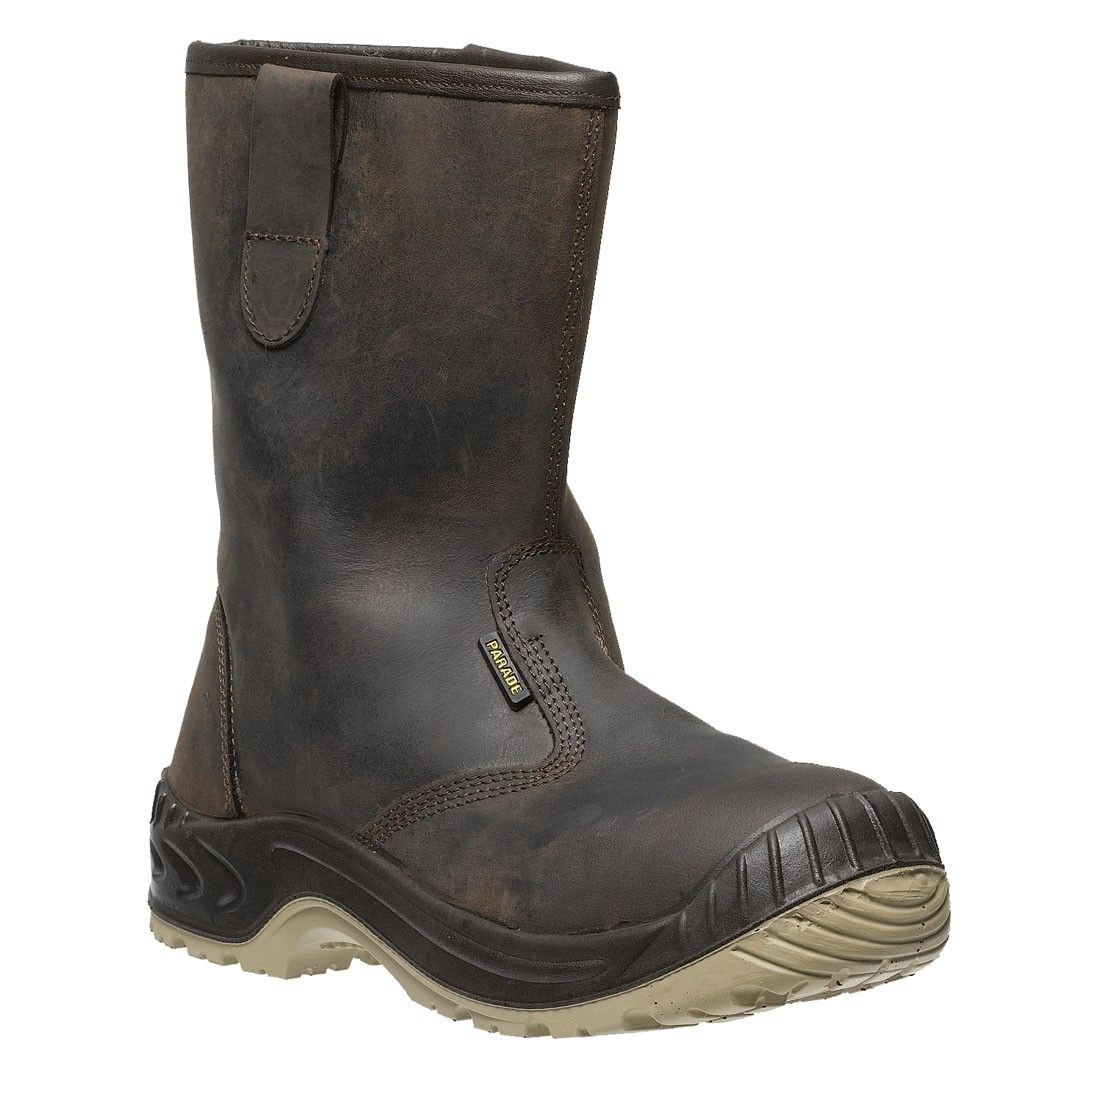 62f7903628e Nordik Rigger Boots from Premium French Manufacturer Parade | Rigger ...